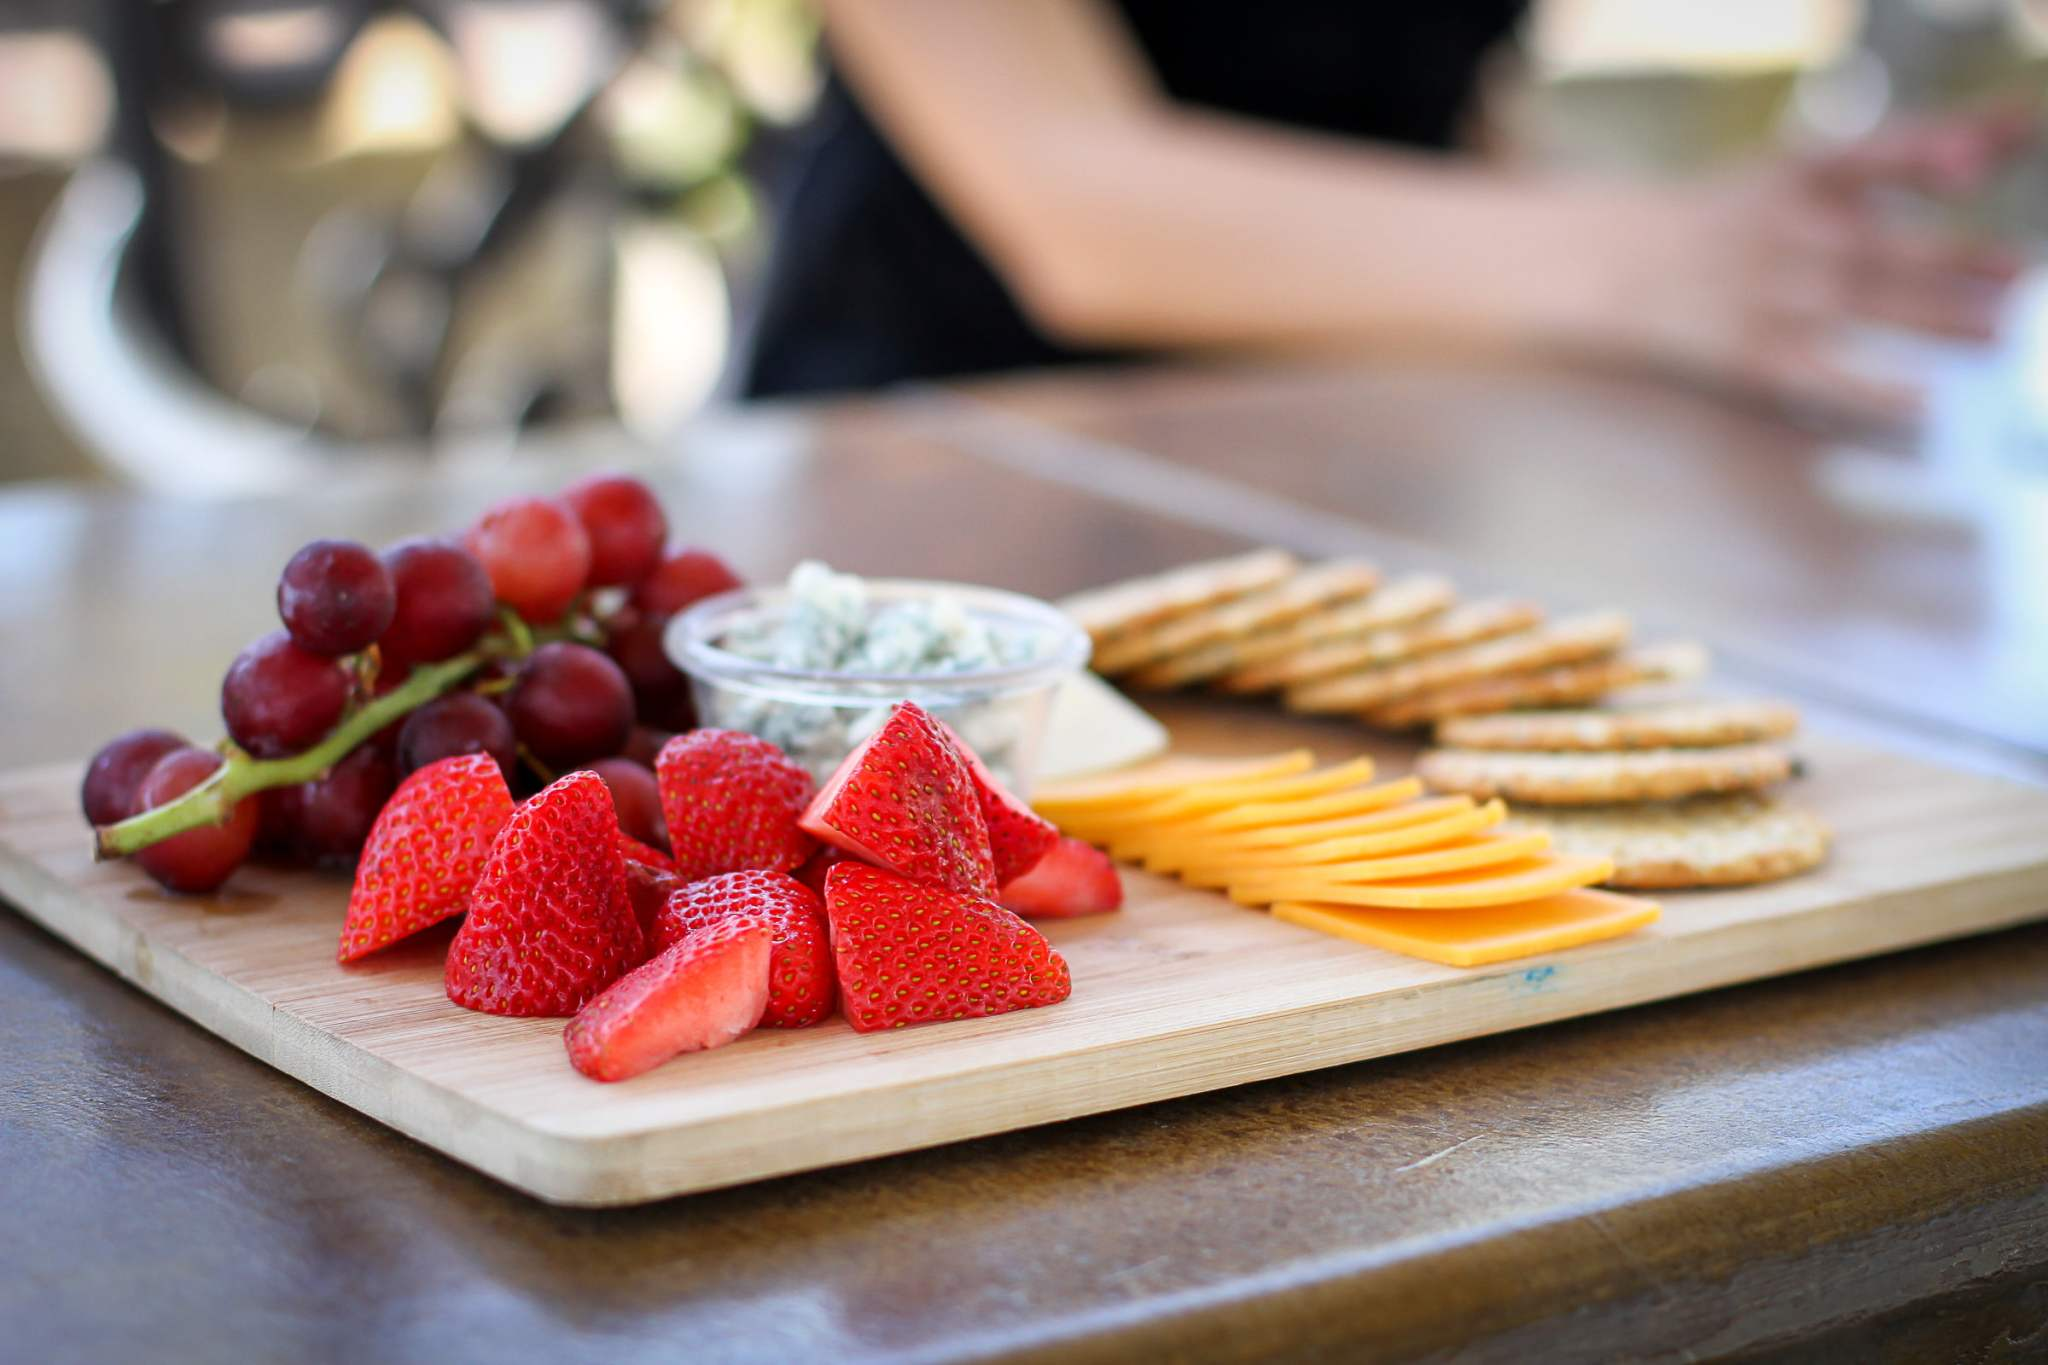 Pair a delicious platter with a glass of wine